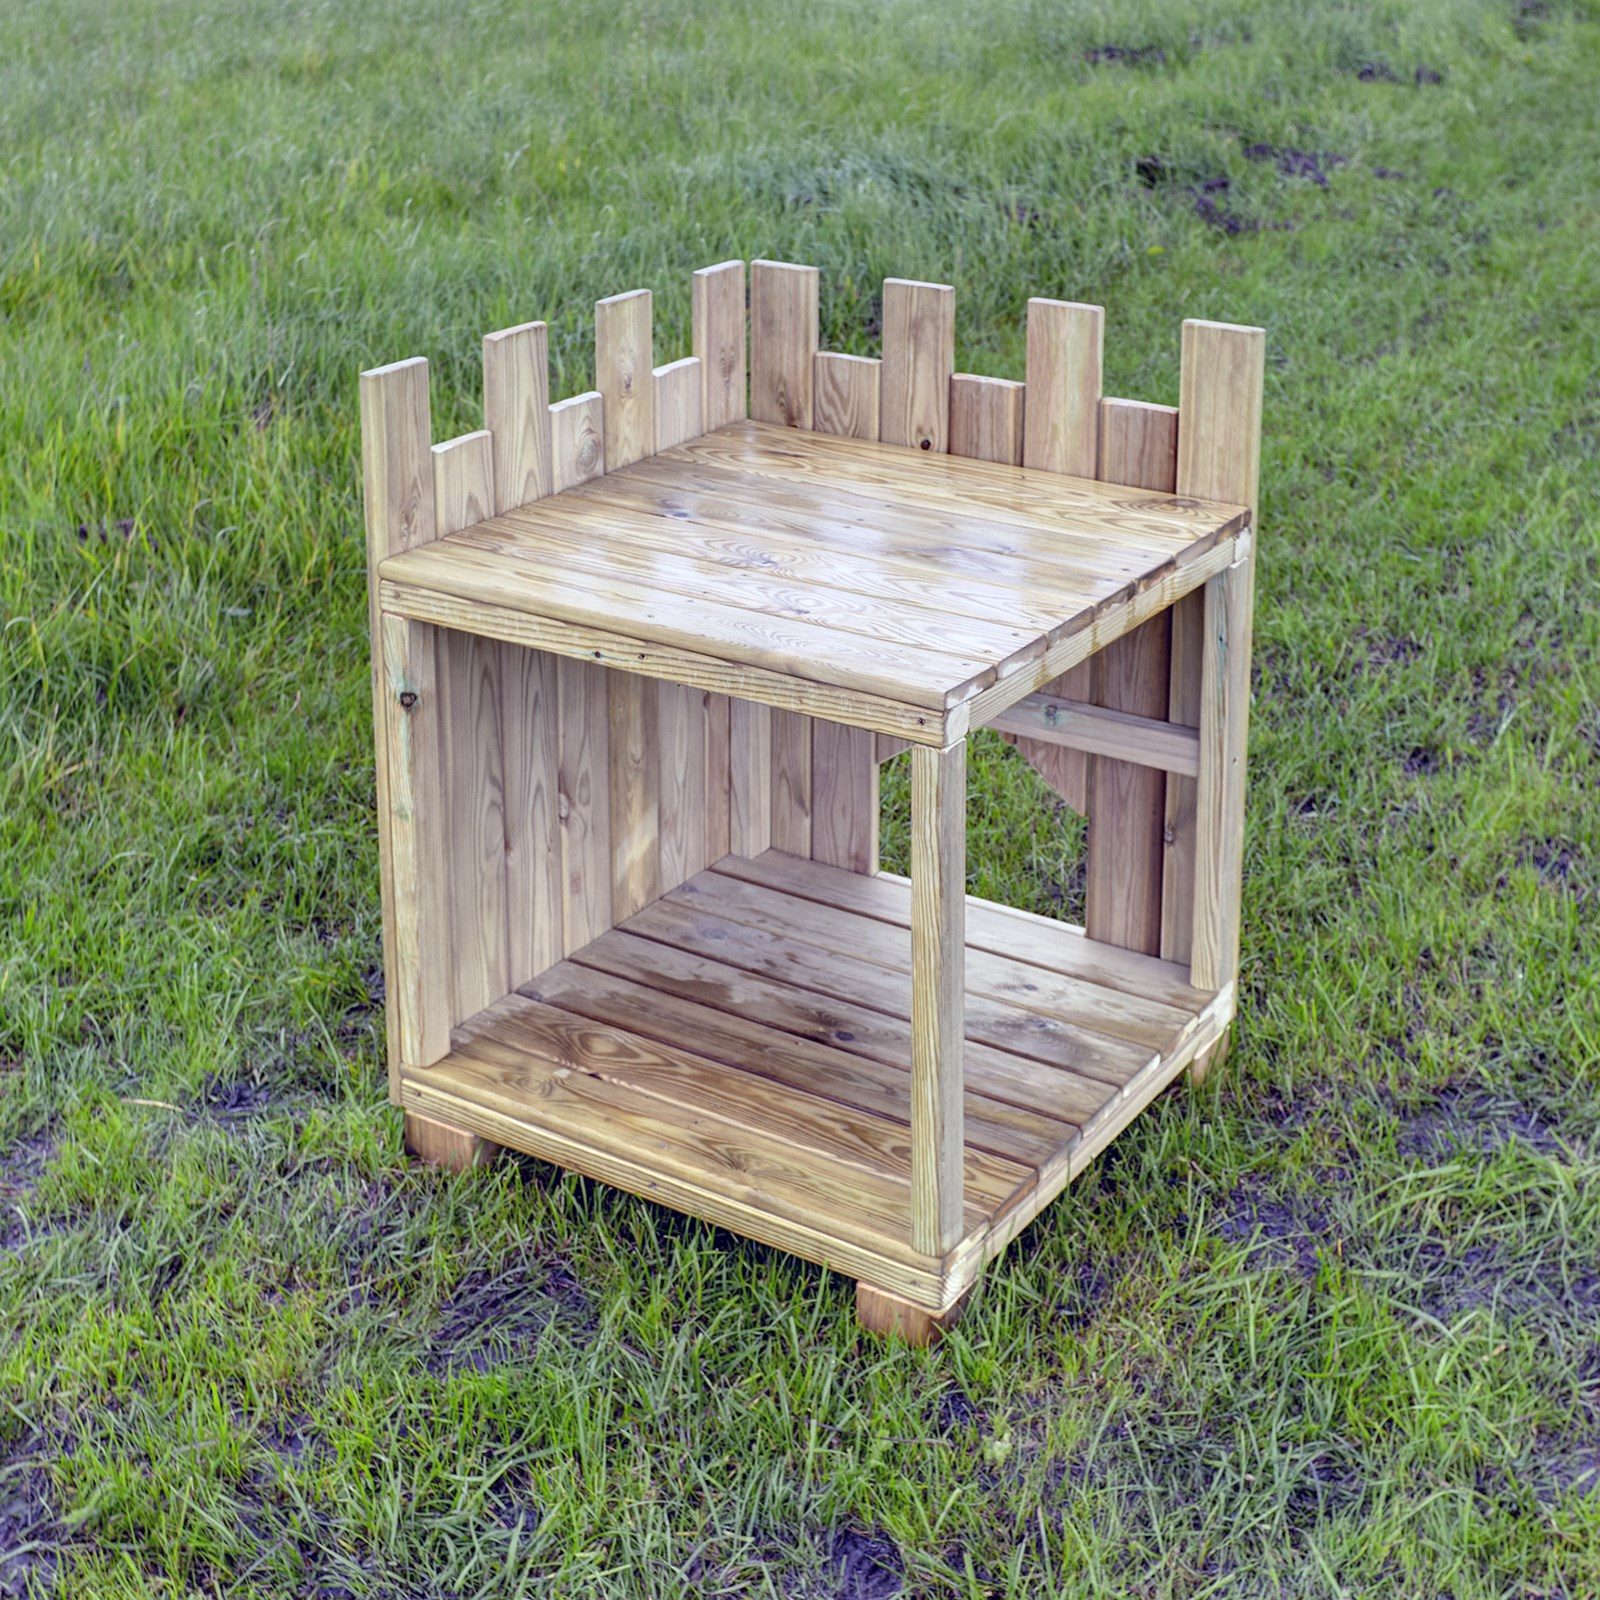 Wooden Castle from Hope Education